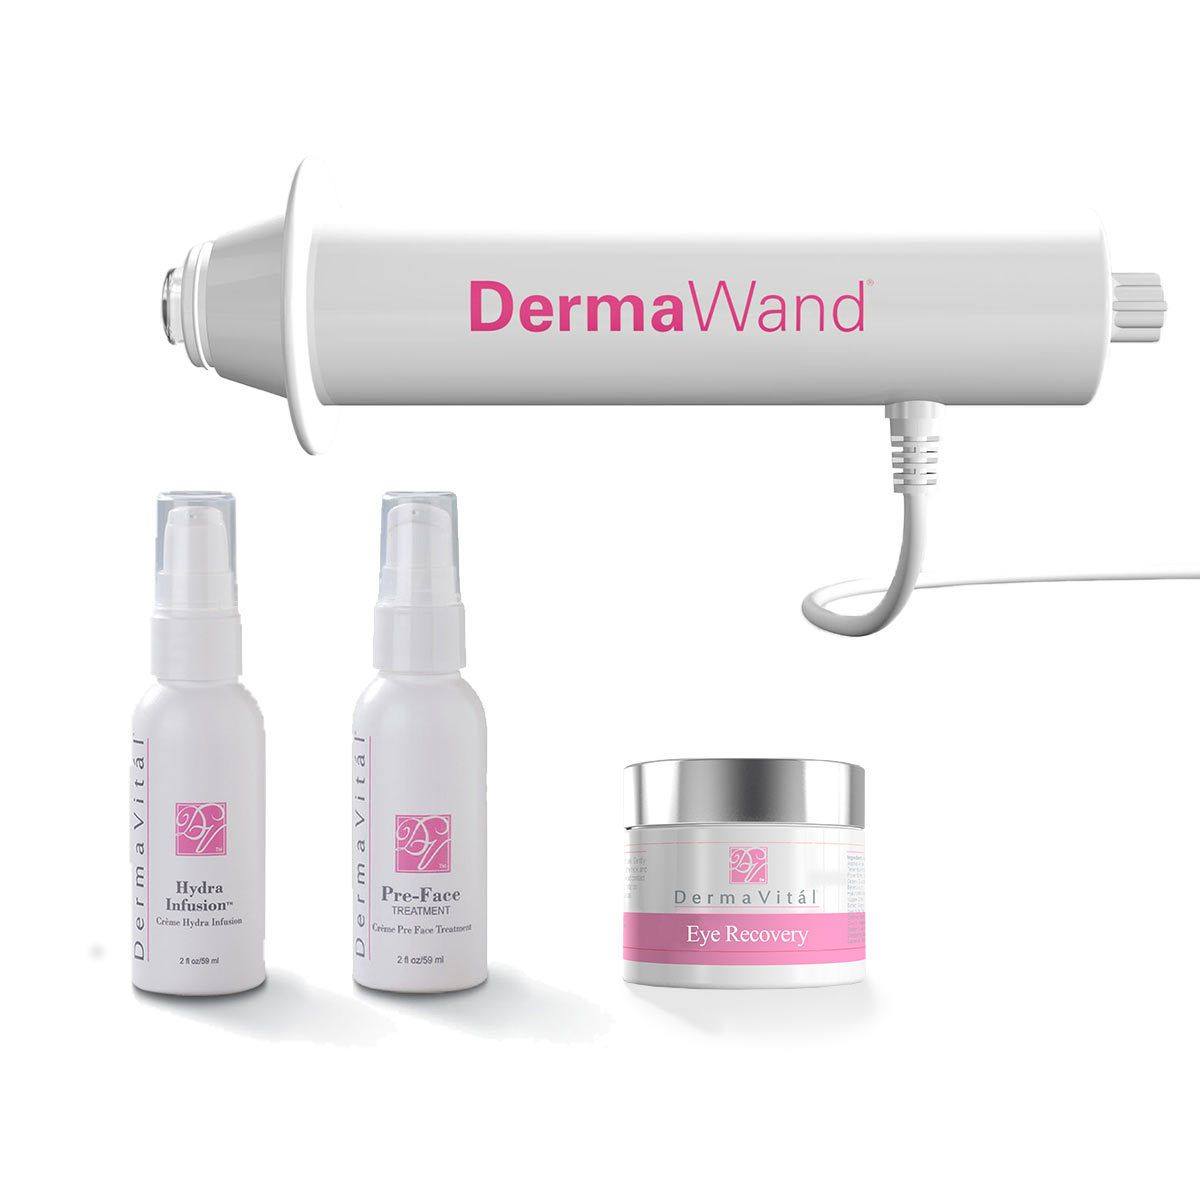 Dermawand Anti Aging Beauty Tool With Pre Face Hydra Infusion And Eye Recovery Products Costco Uk Anti Aging Beauty Beauty Tool Derma Wand